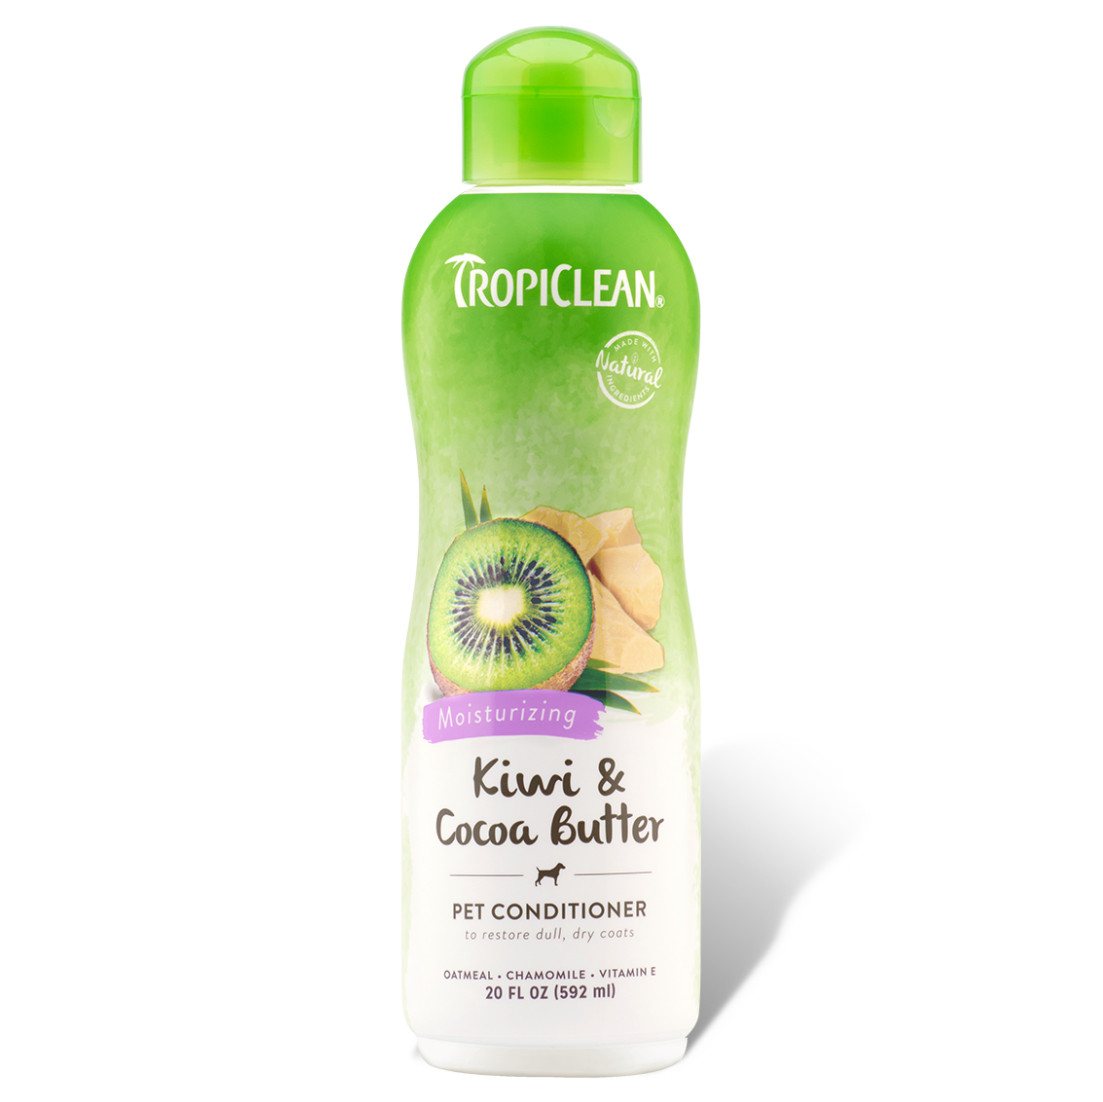 click here to shop TropiClean Kiwi & Cocoa Butter Moisturizing Pet Conditioner